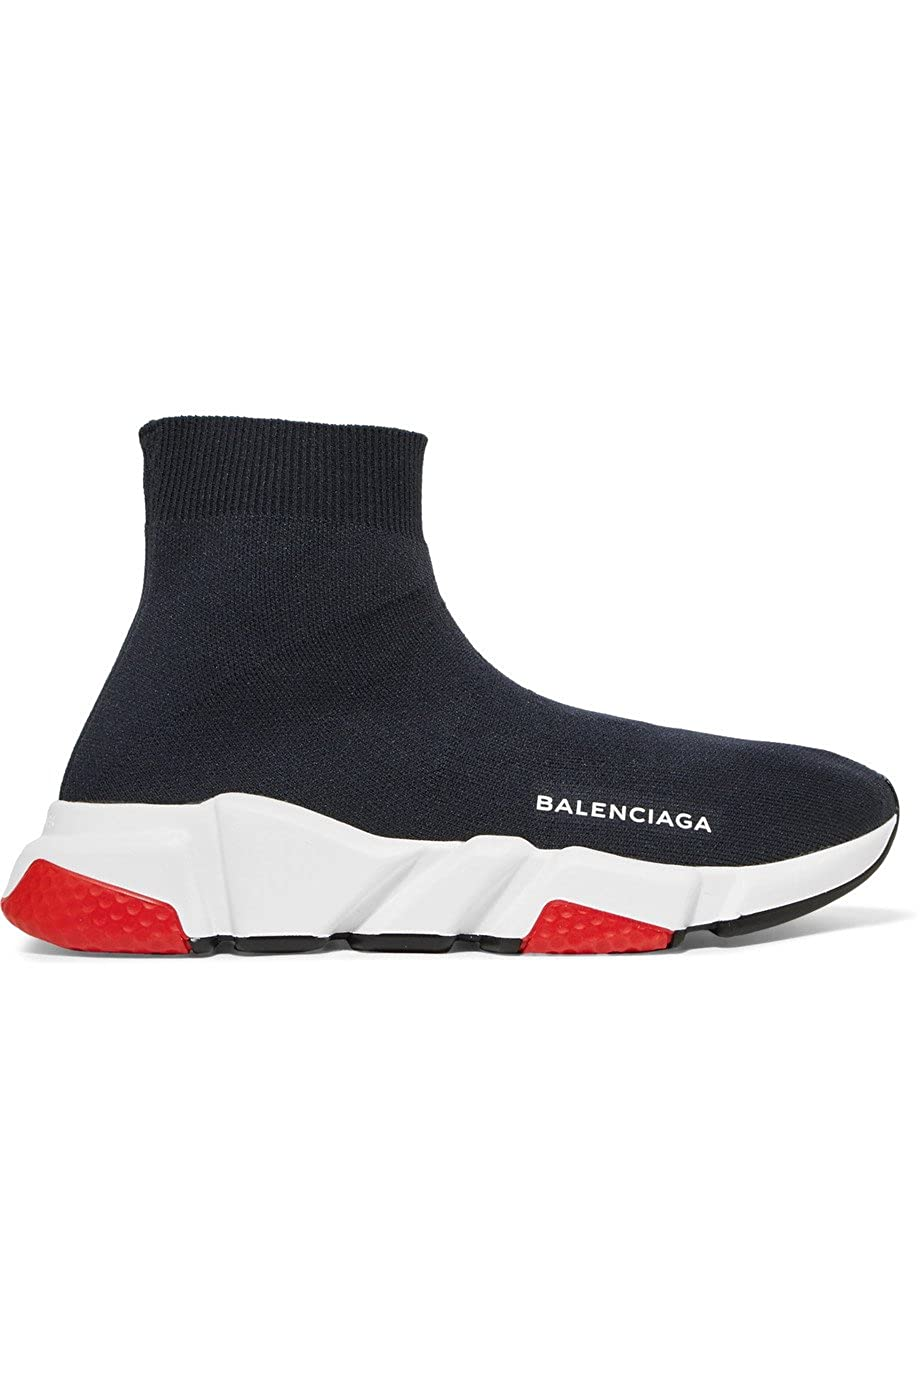 b82893b0c70 TOPSHOD Unisex Mens Womens Balenciaga Speed Trainer Sneaker Black White  Red  Amazon.co.uk  Shoes   Bags